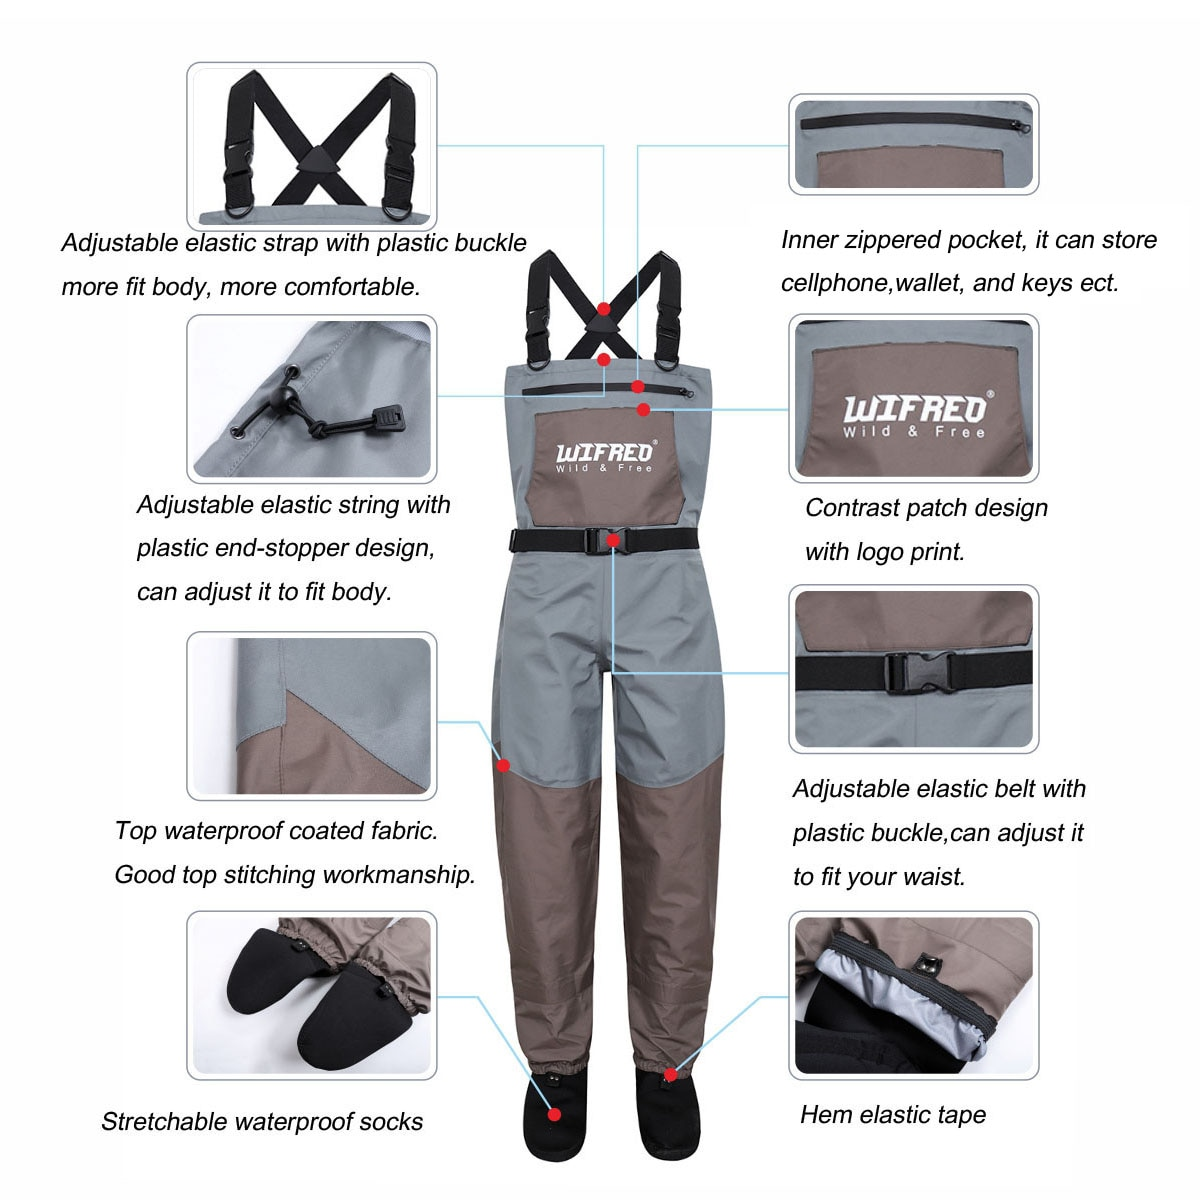 1PCS Chest Waders 3 Ply Breathable Waterproof Fishing Wading Pants Waders Overall Clothes For Men and Women Size S/M/L/XL/XXL enlarge